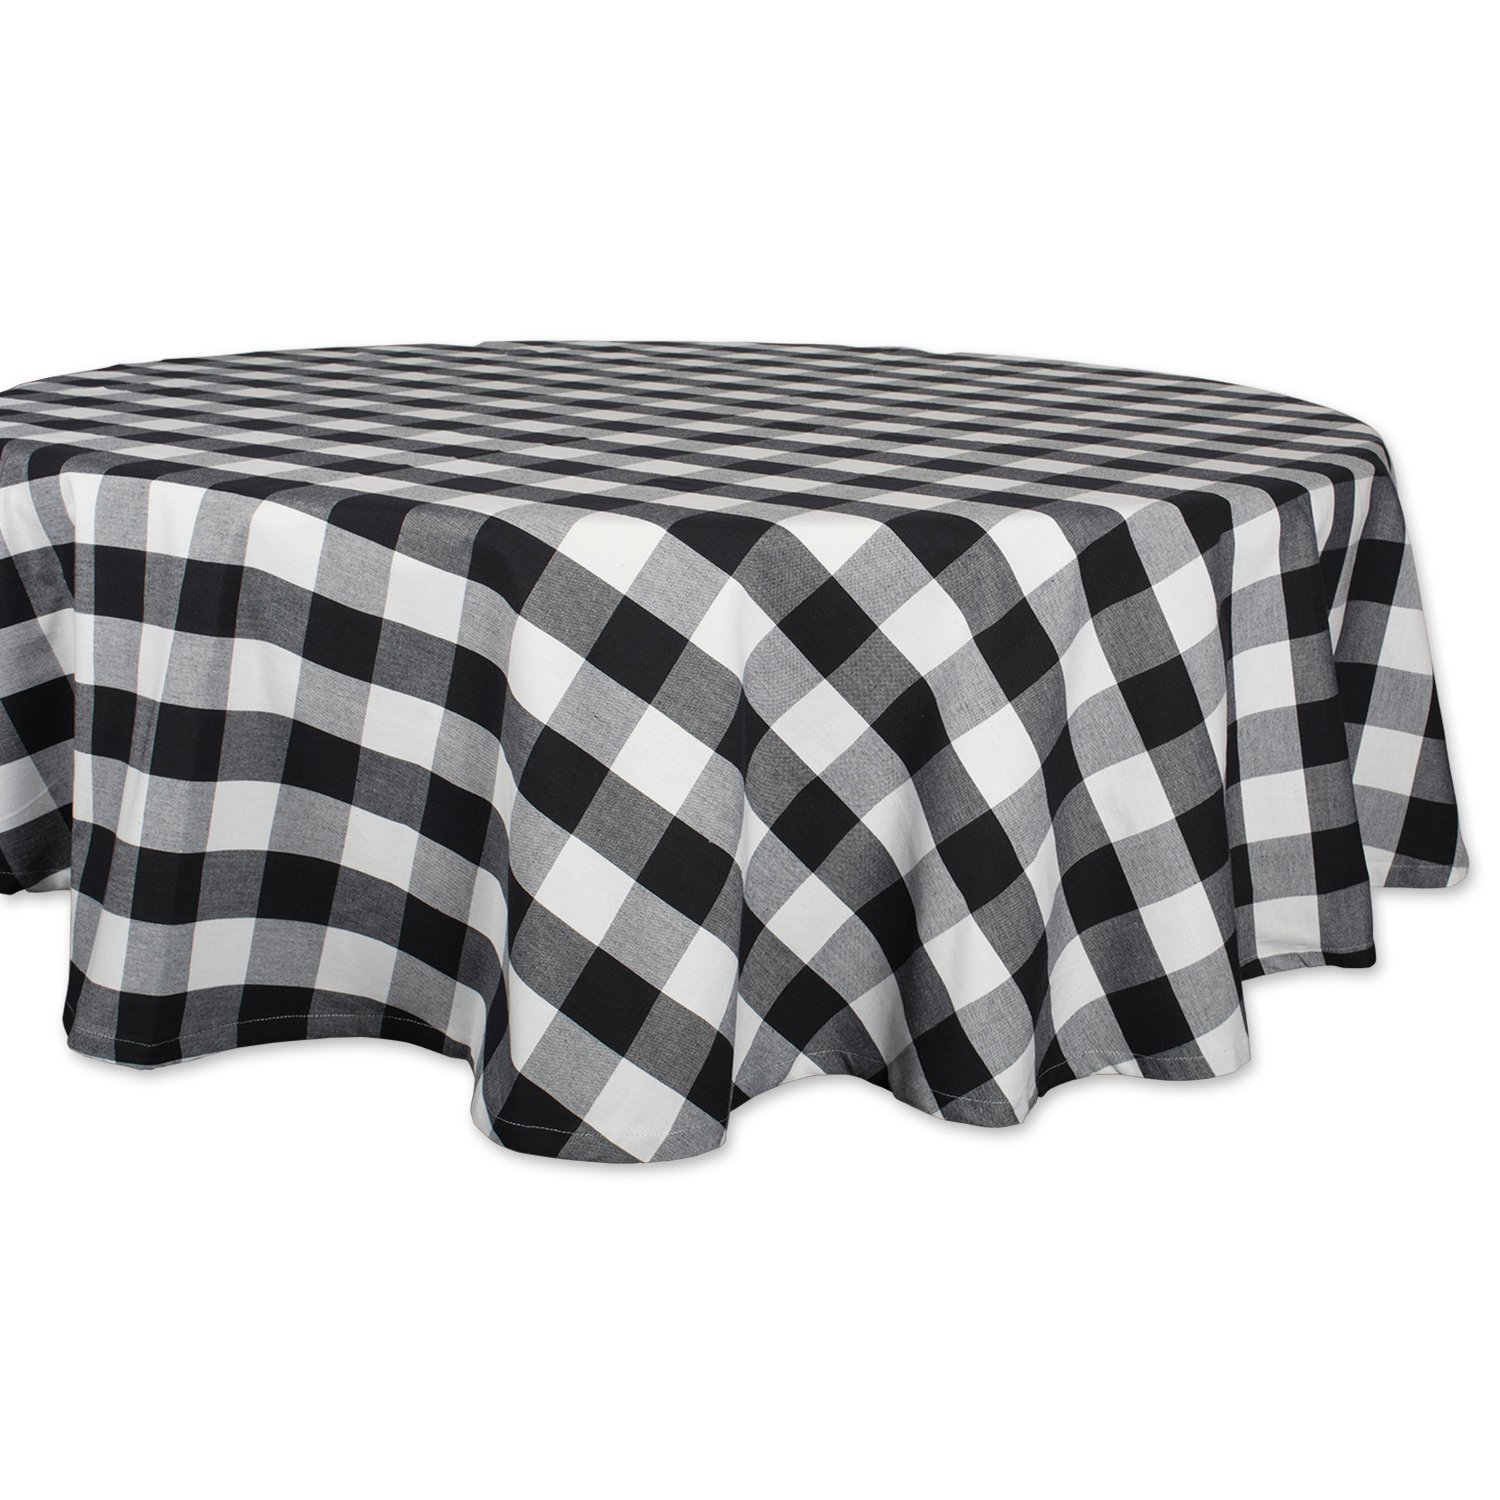 """DII Cotton Buffalo Check Plaid Round Tablecloth for Family Dinners or Gatherings, Indoor or Outdoor Parties, & Everyday Use (70x70"""",Seats 4-6 People), Black & White"""